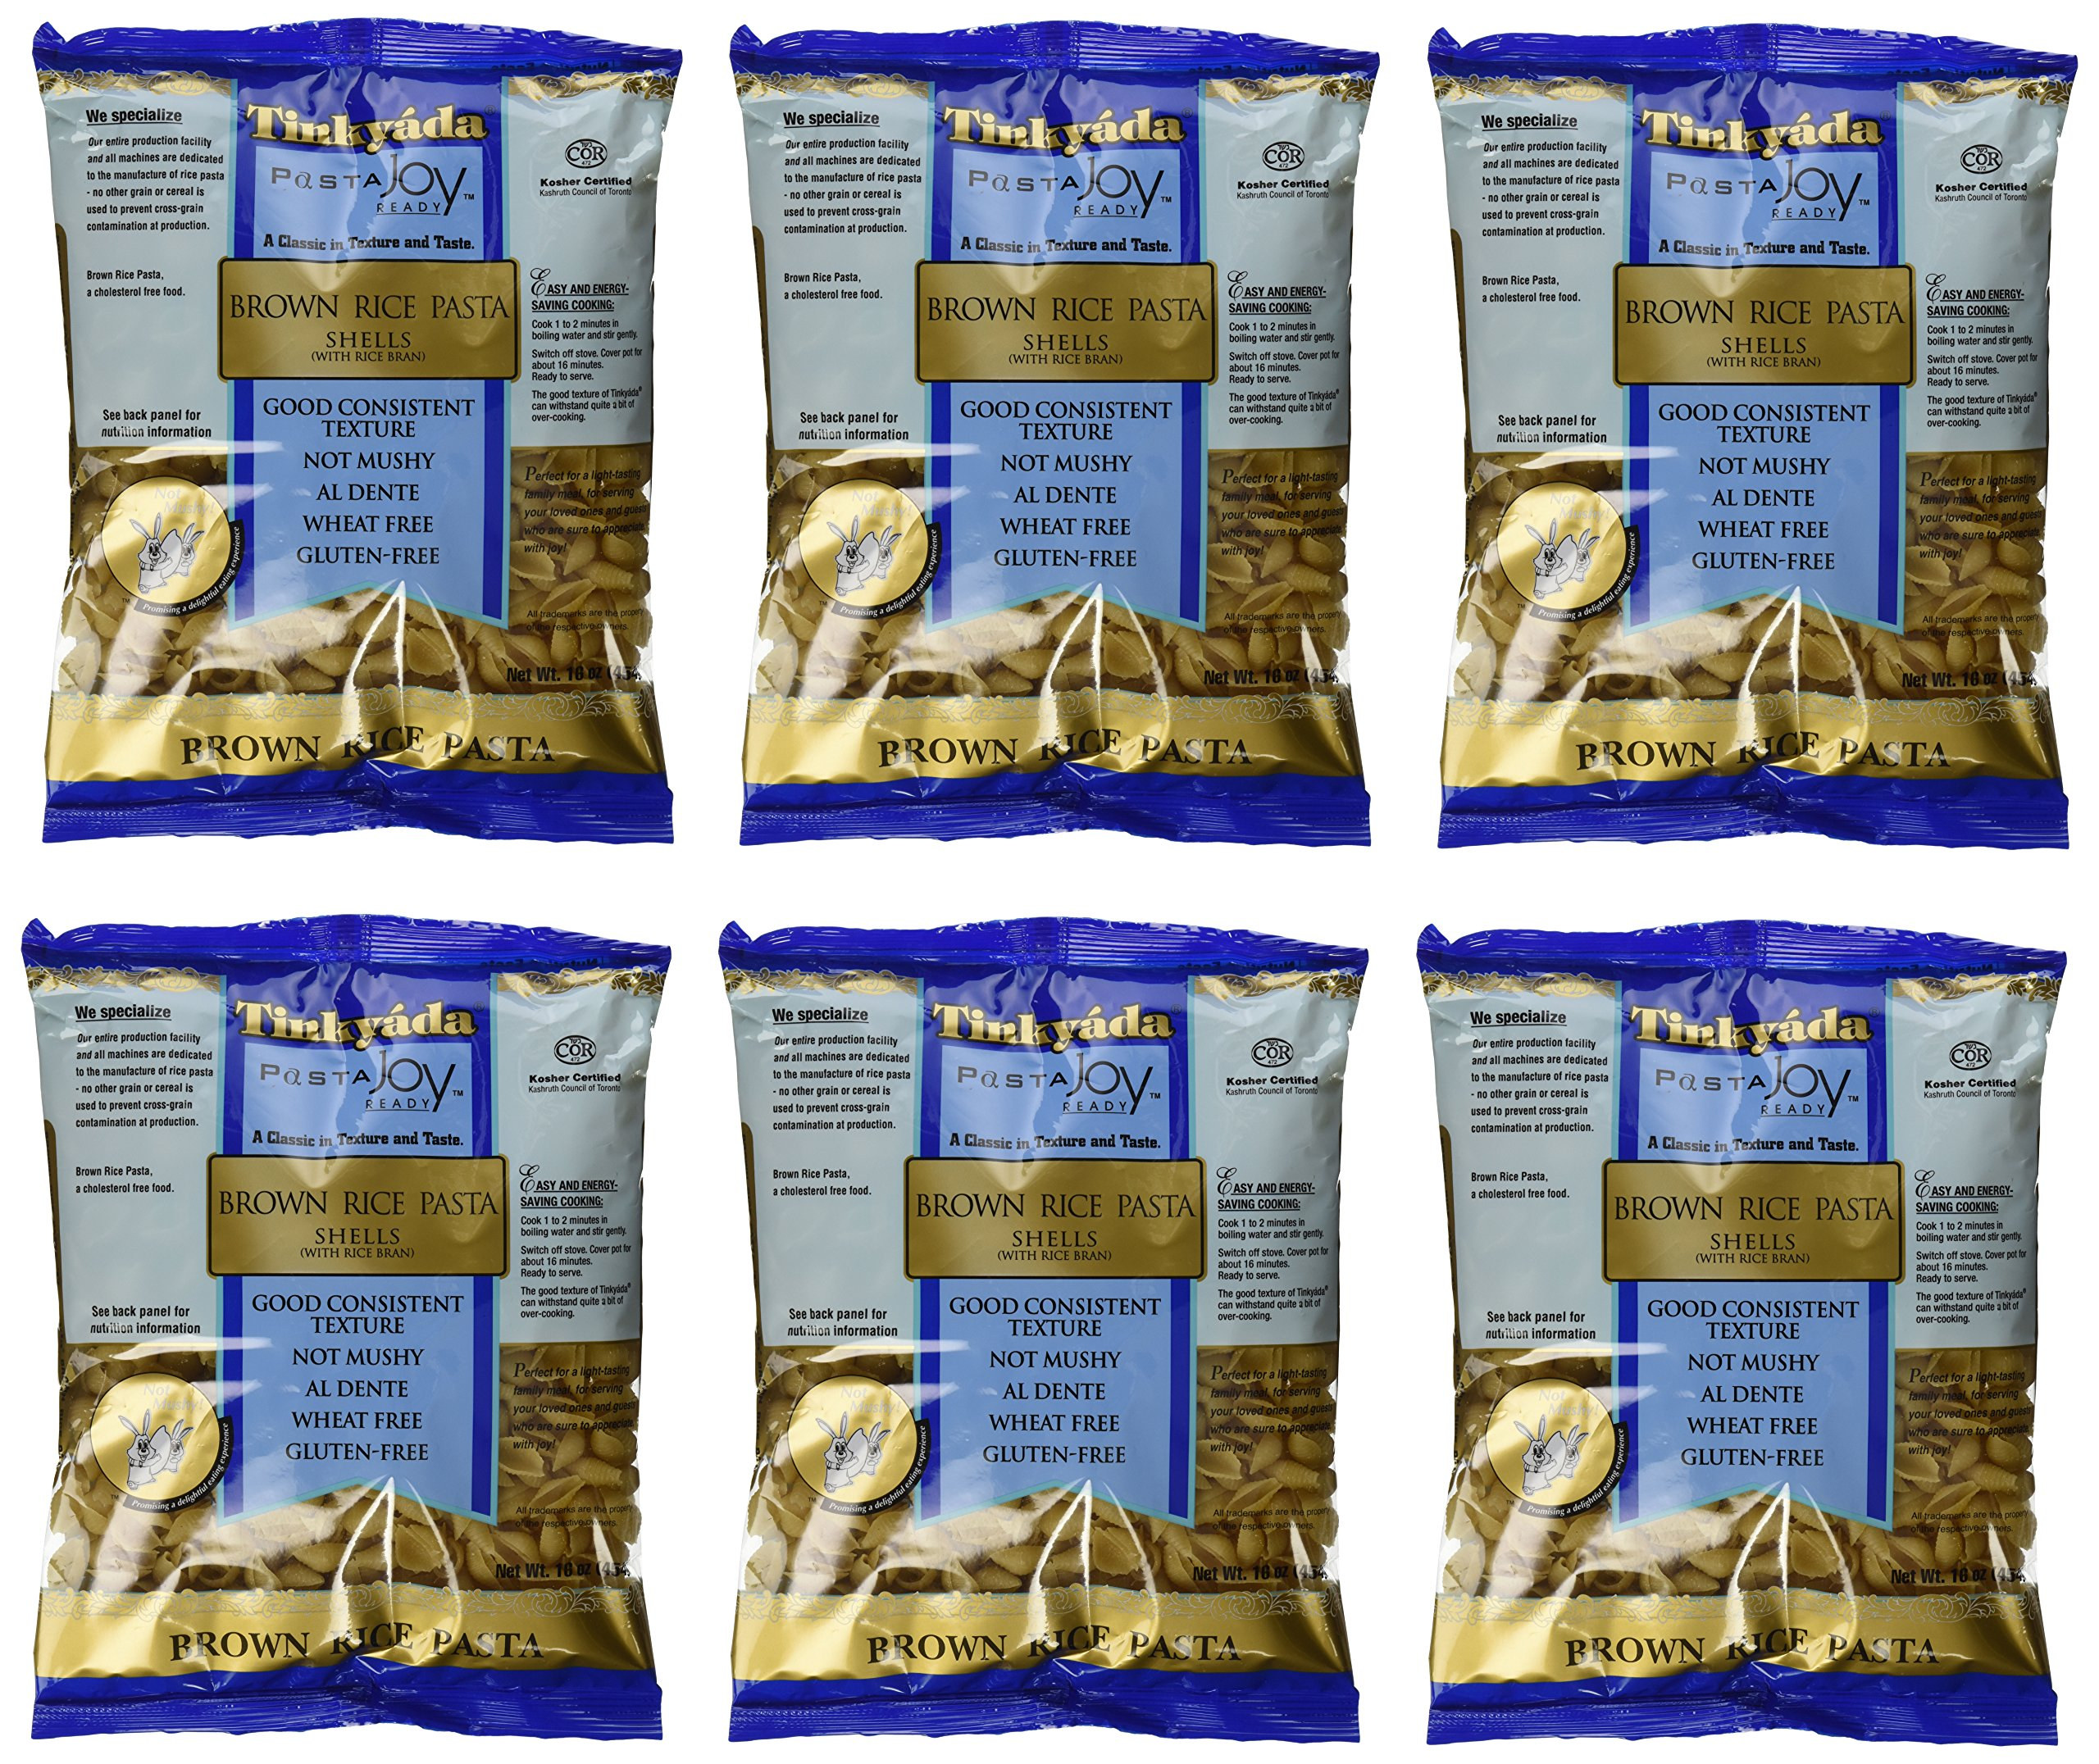 Tinkyada Brown Rice Pasta Shells Gluten Free, 16-Ounce (Pack of 6) by Tinkyada